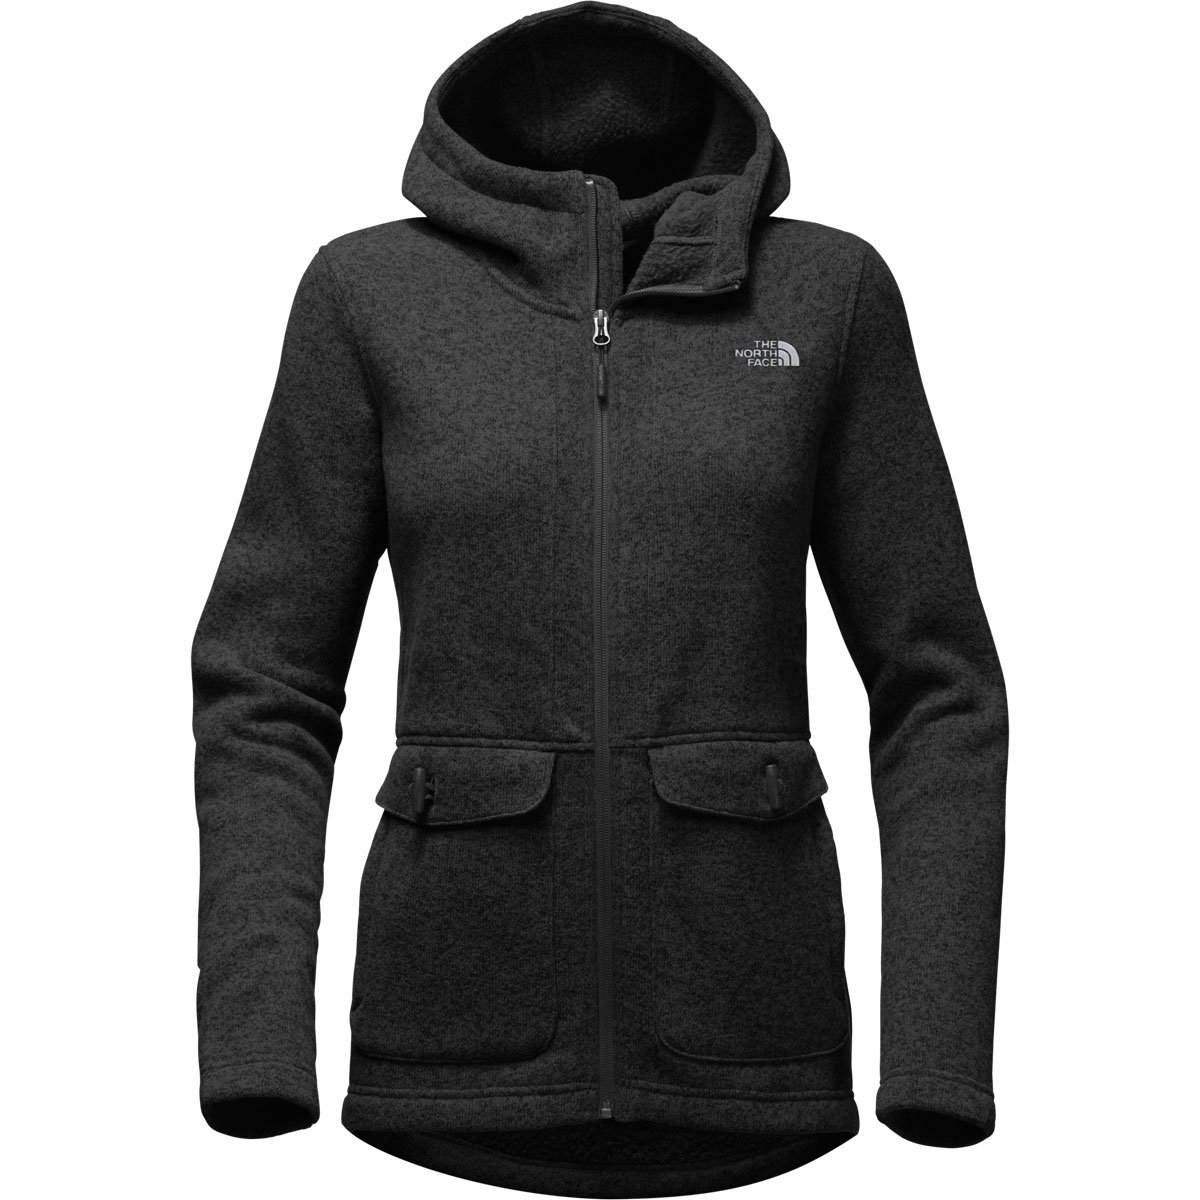 The North Face Women's Crescent Parka - Black Heather - S (Past Season)